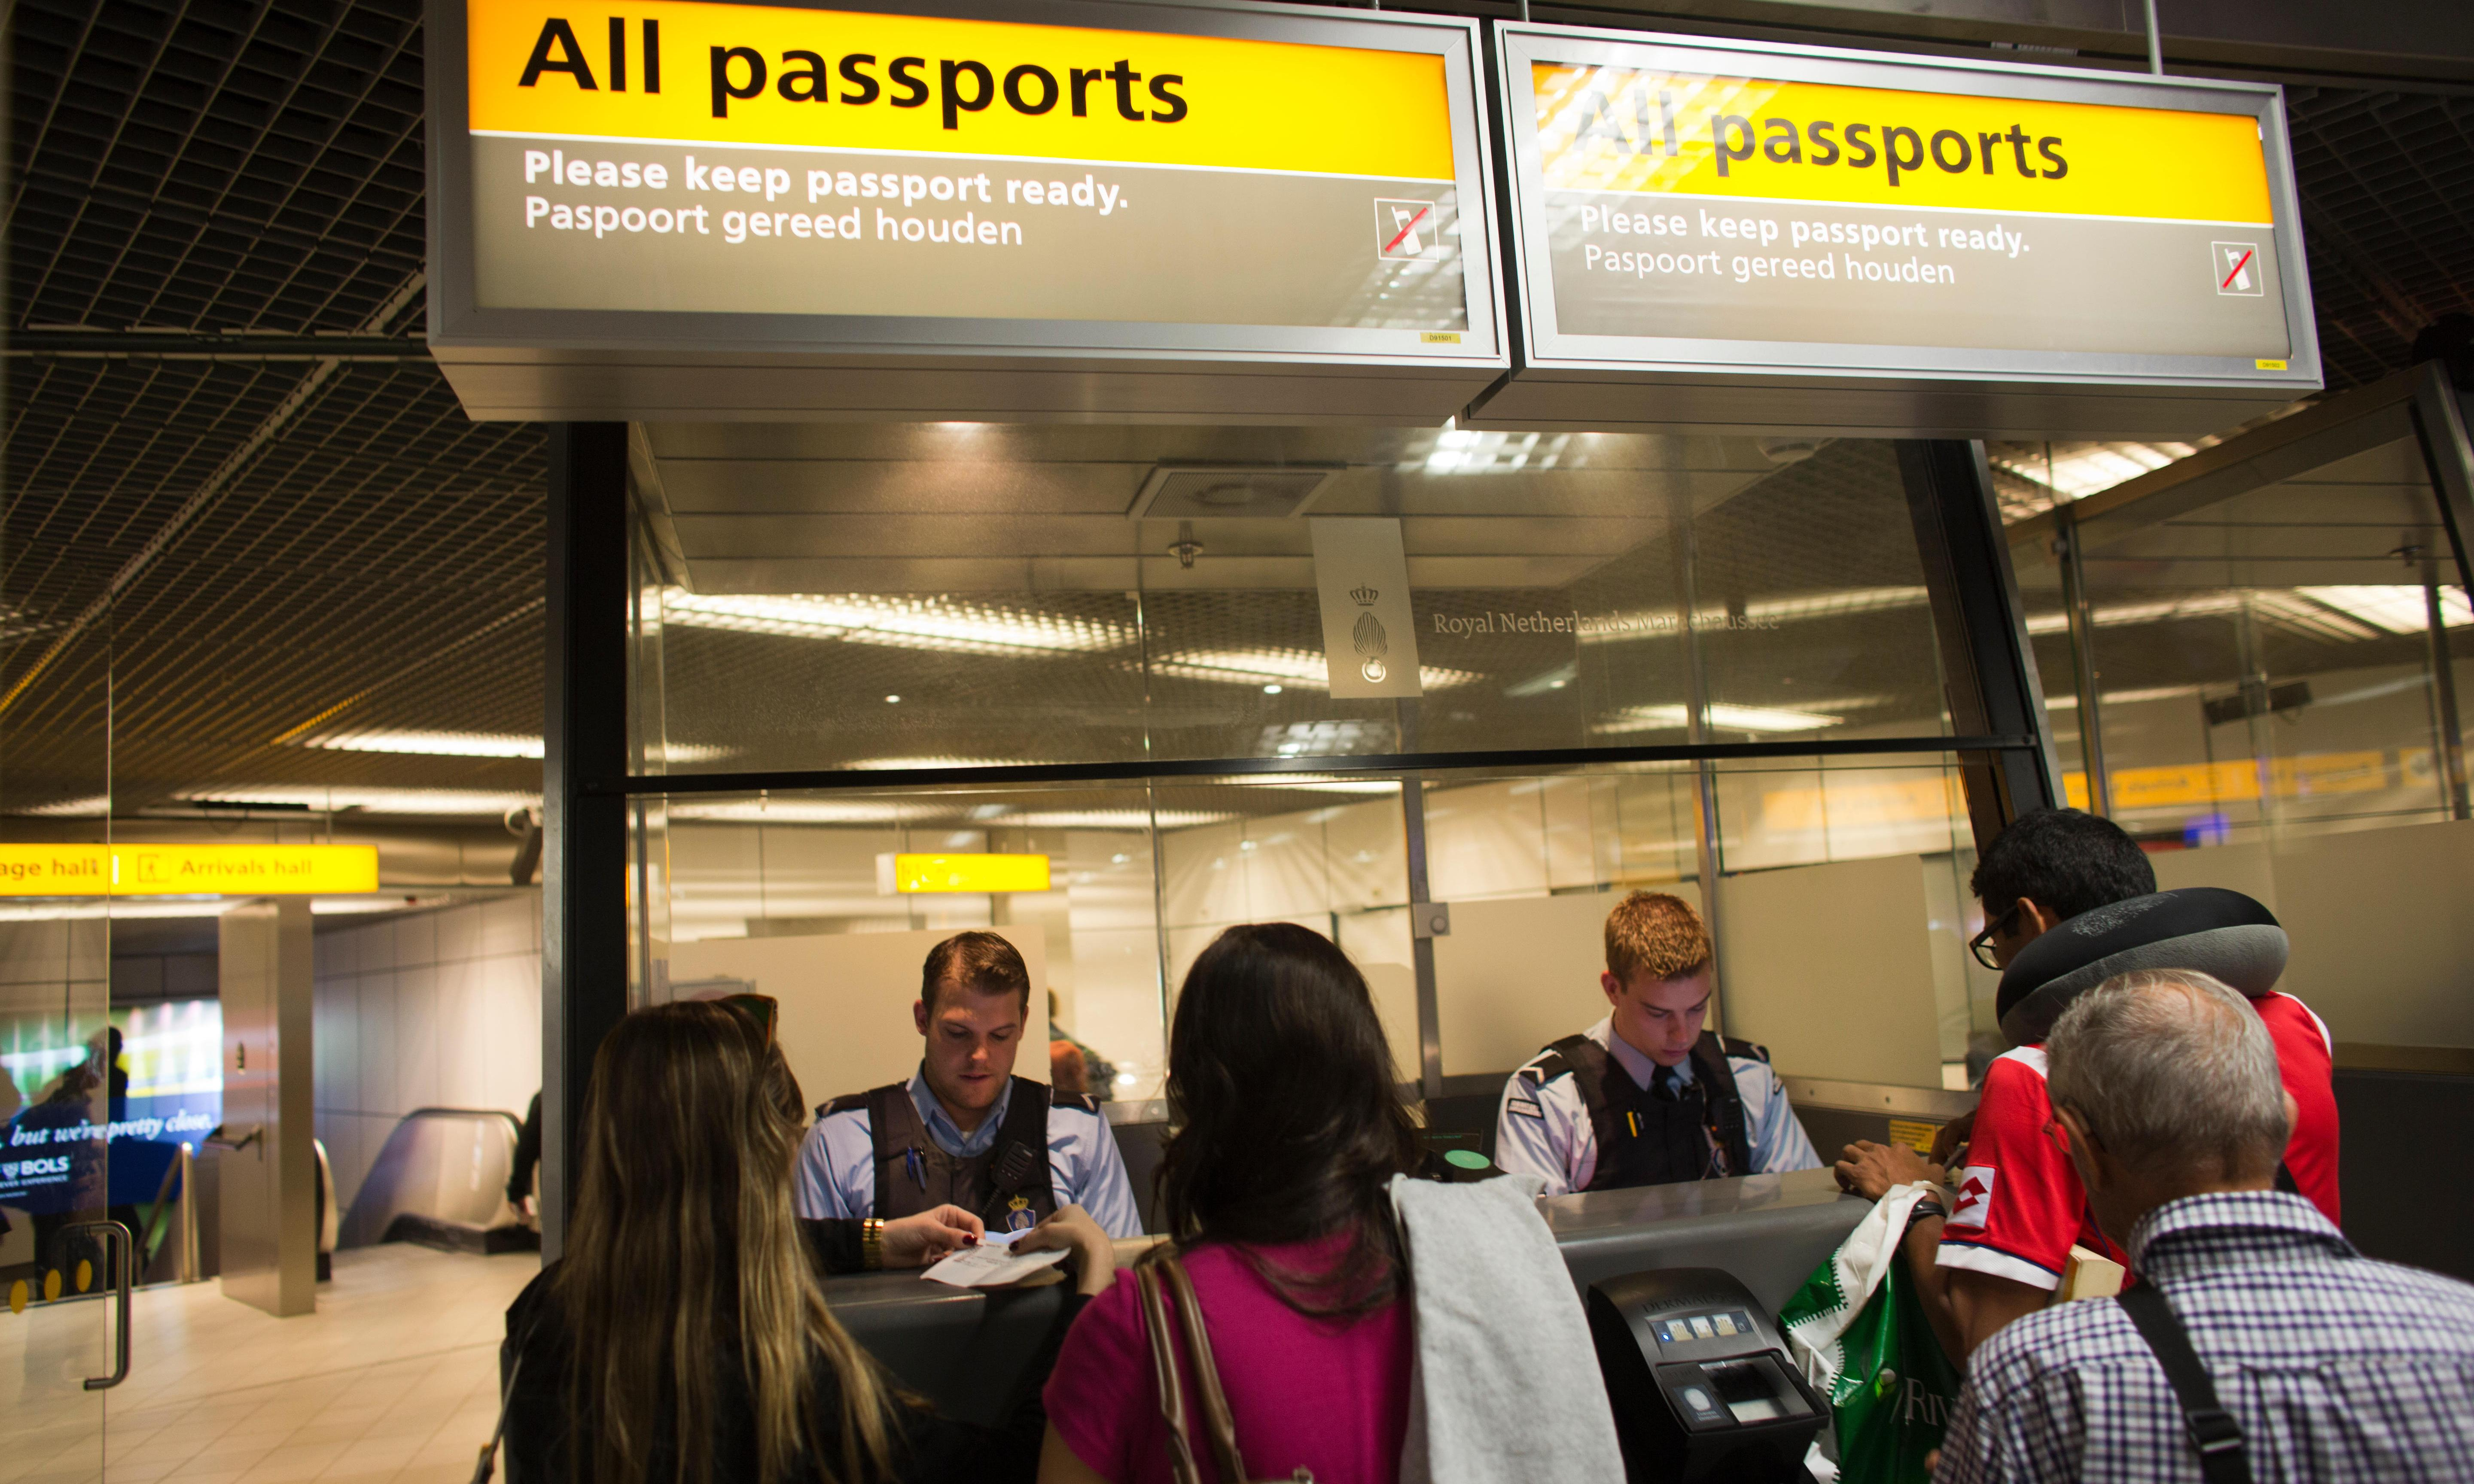 British and want an EU passport? Here's where you can apply